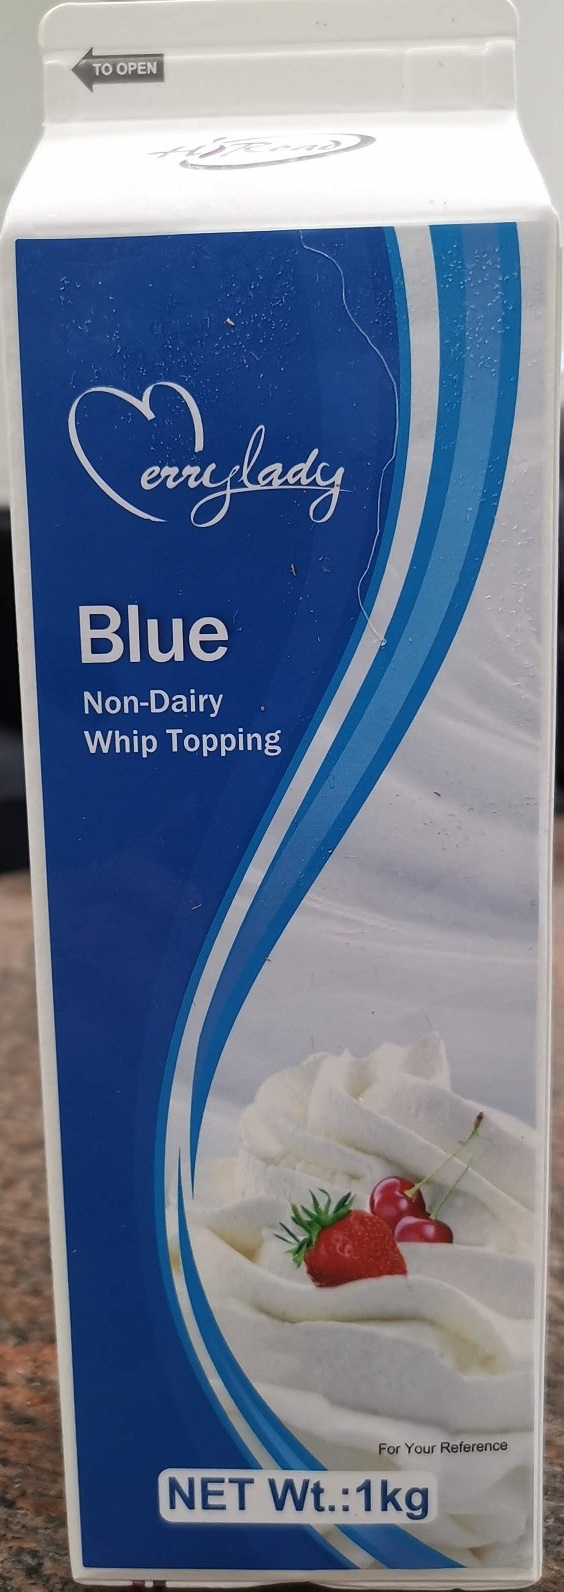 Merrylady – Non-Dairy Blue Whip Topping – 1 kg (front)